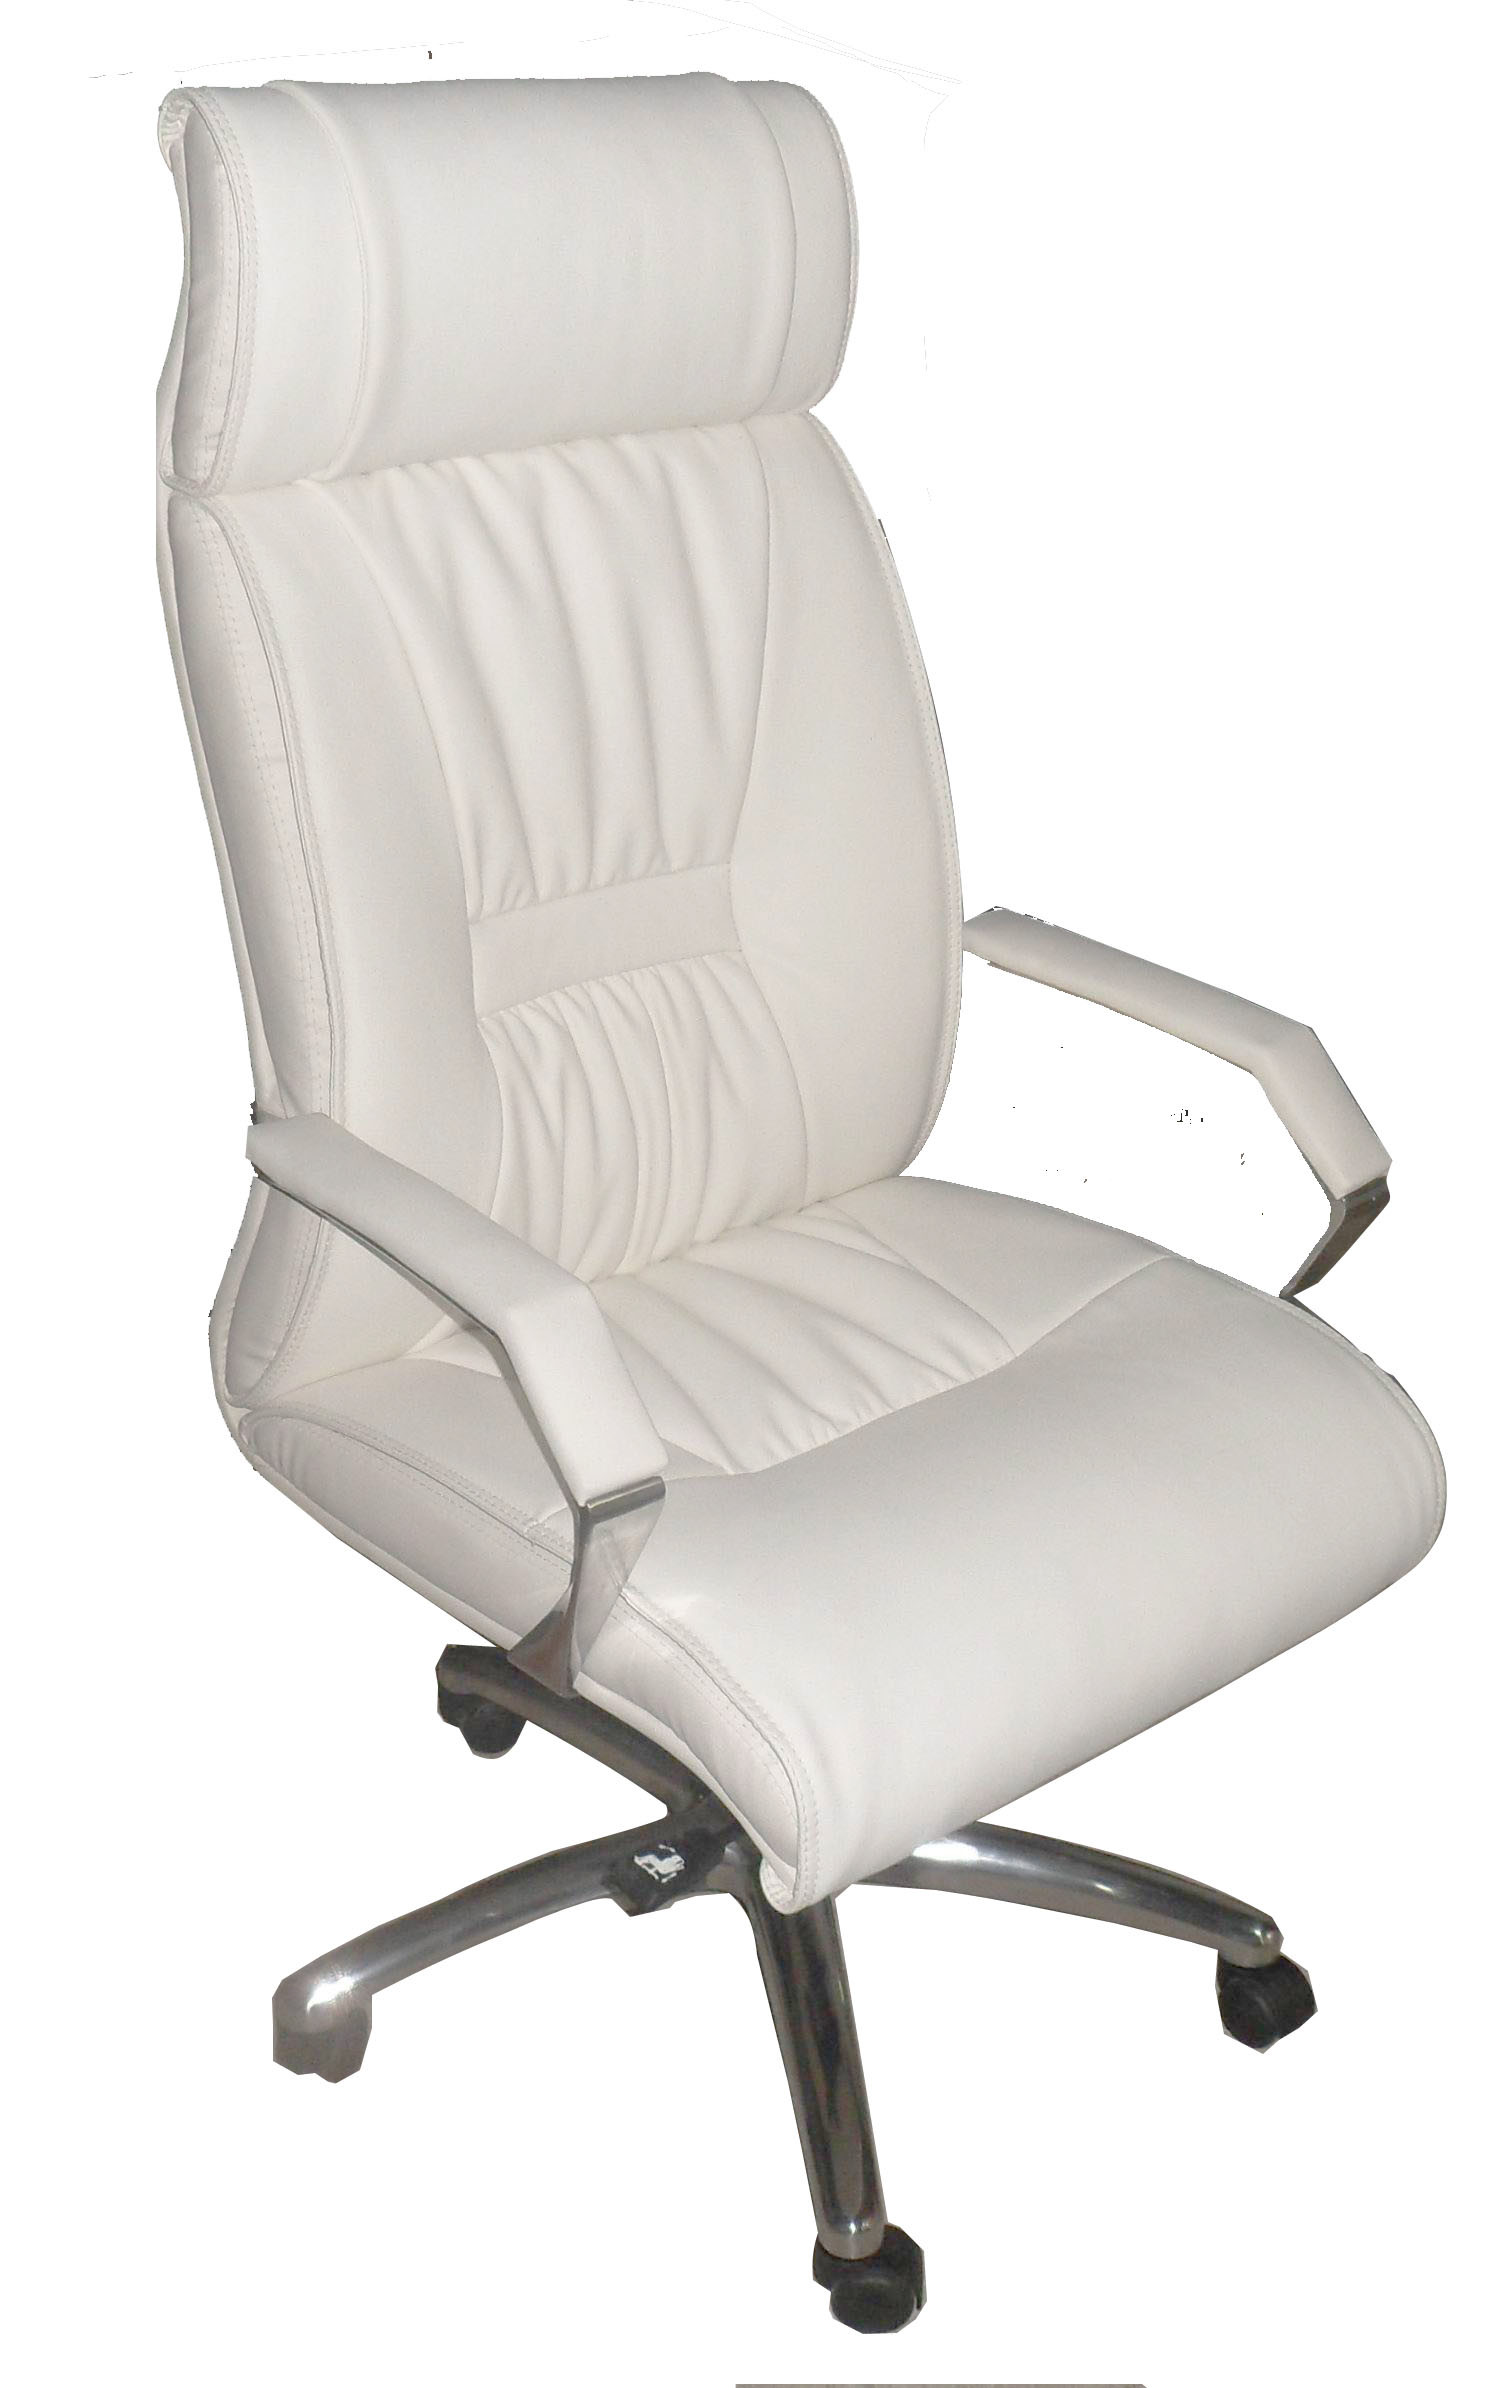 office chairs white leather chair exercise groups china executive in z0030 1